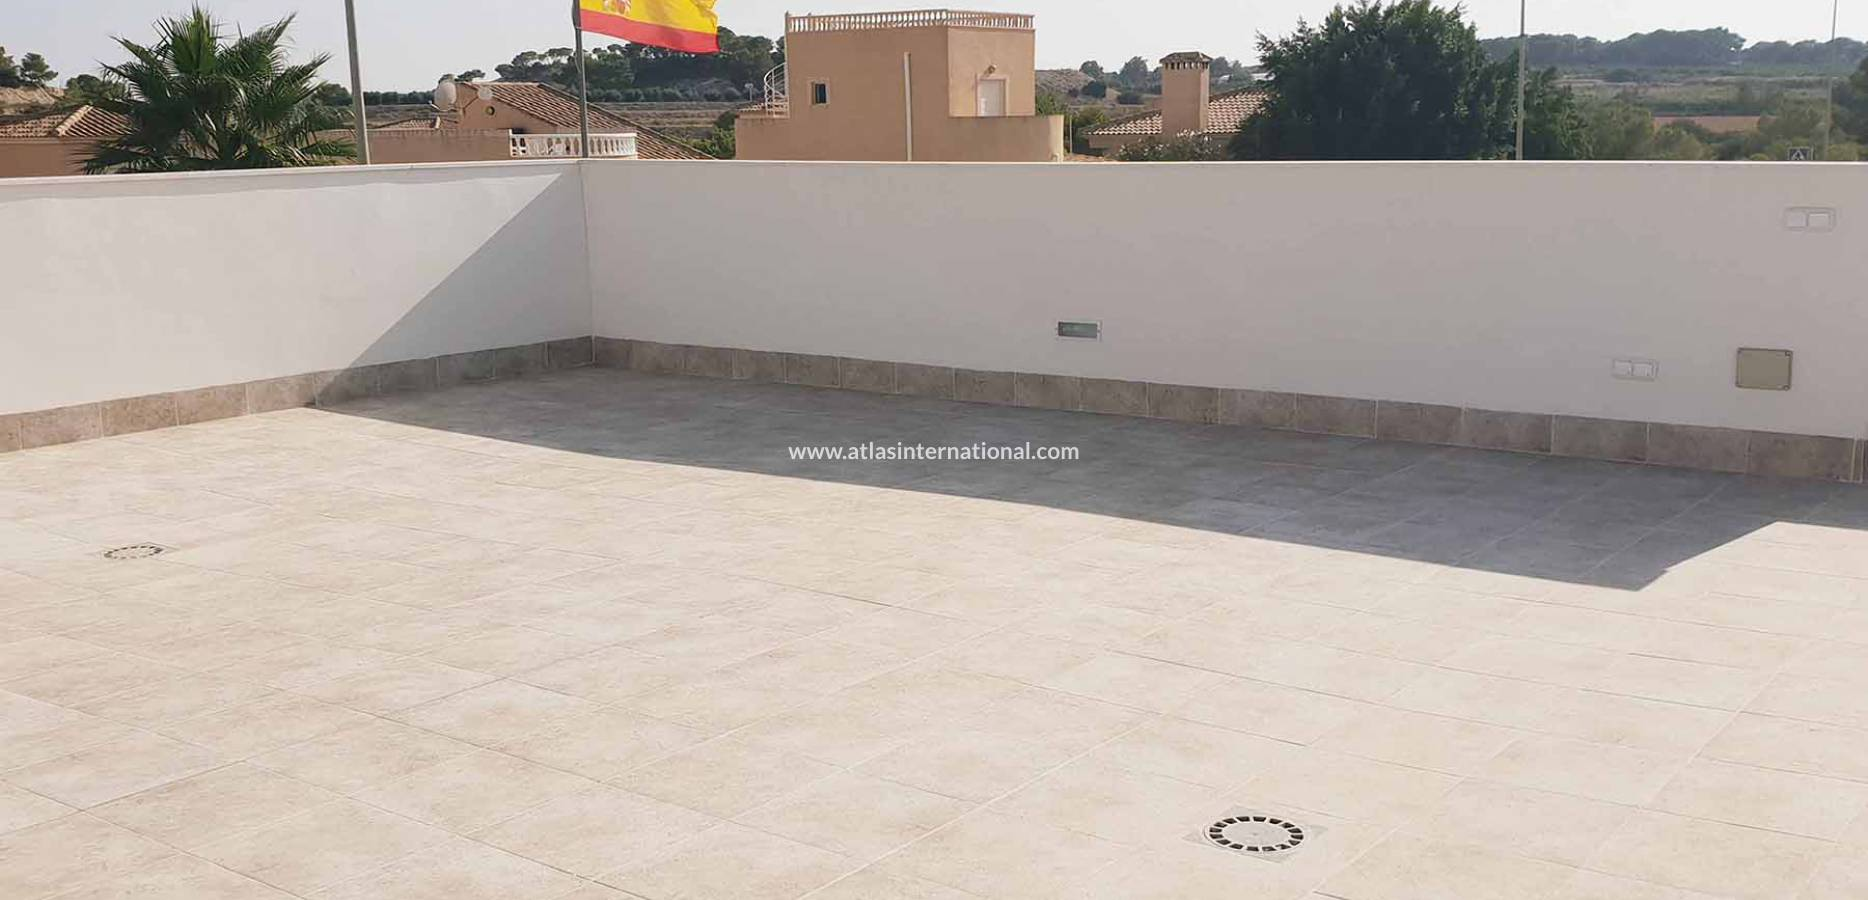 New Build - Detached Villa - Pilar de la horadada - Pinar de Campoverde